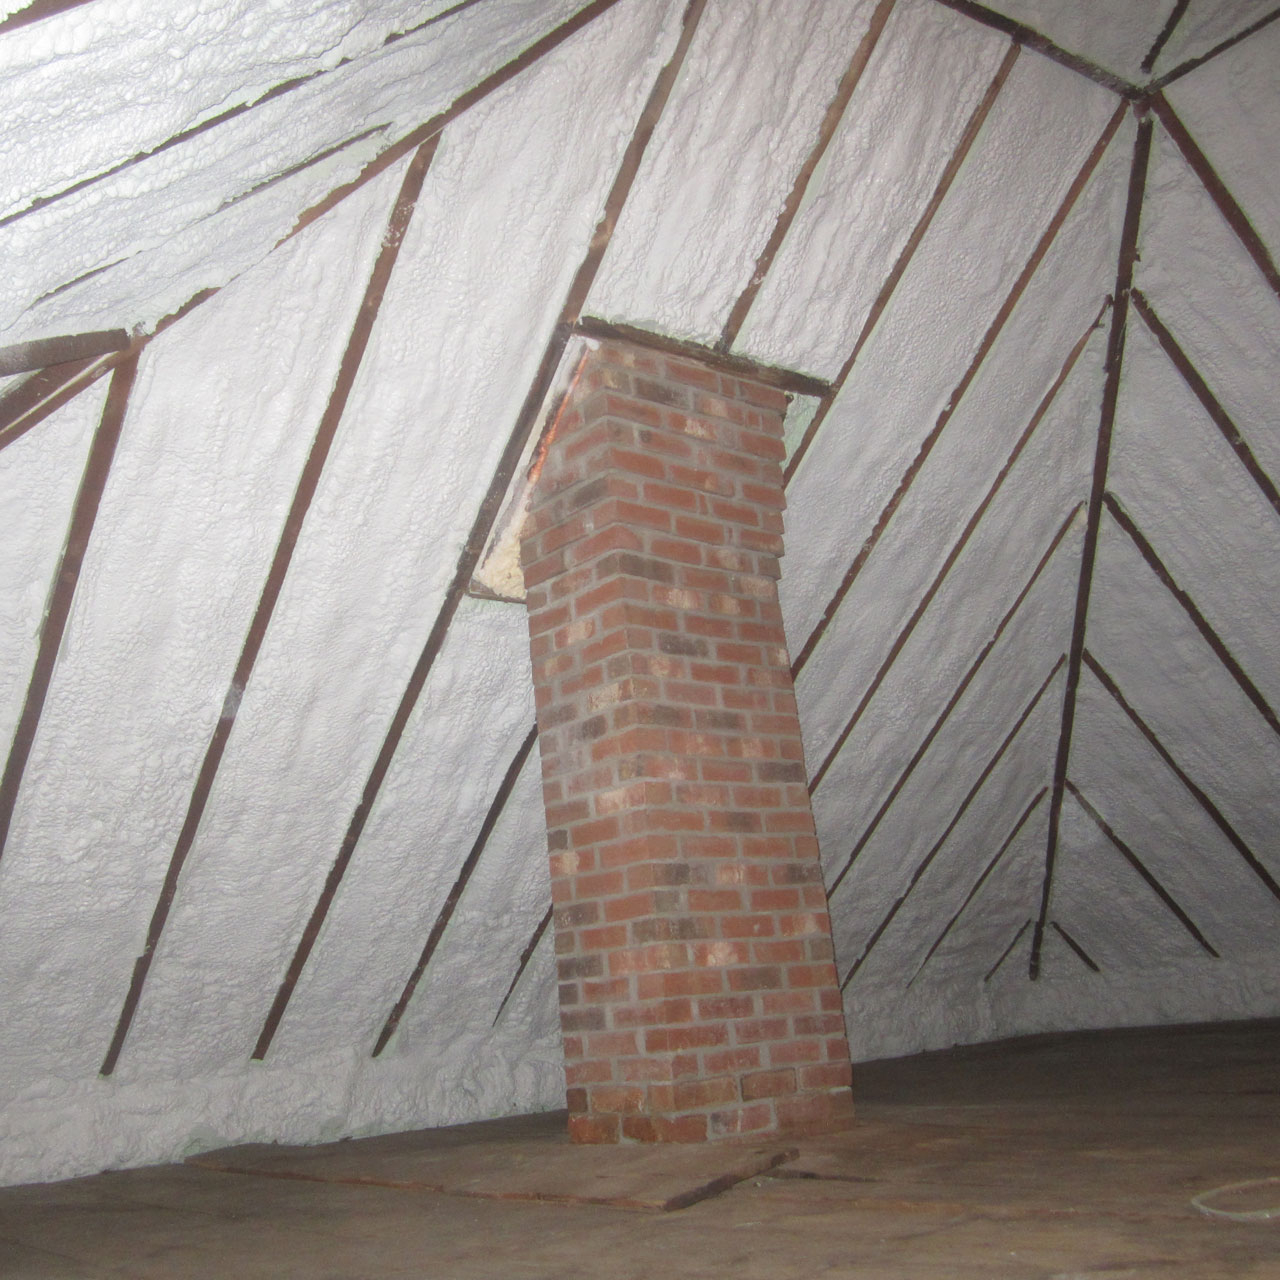 Spray Foam Insulation Services Foam Usa Llc in dimensions 1280 X 1280 : benefits of attic insulation  - Aeropaca.Org